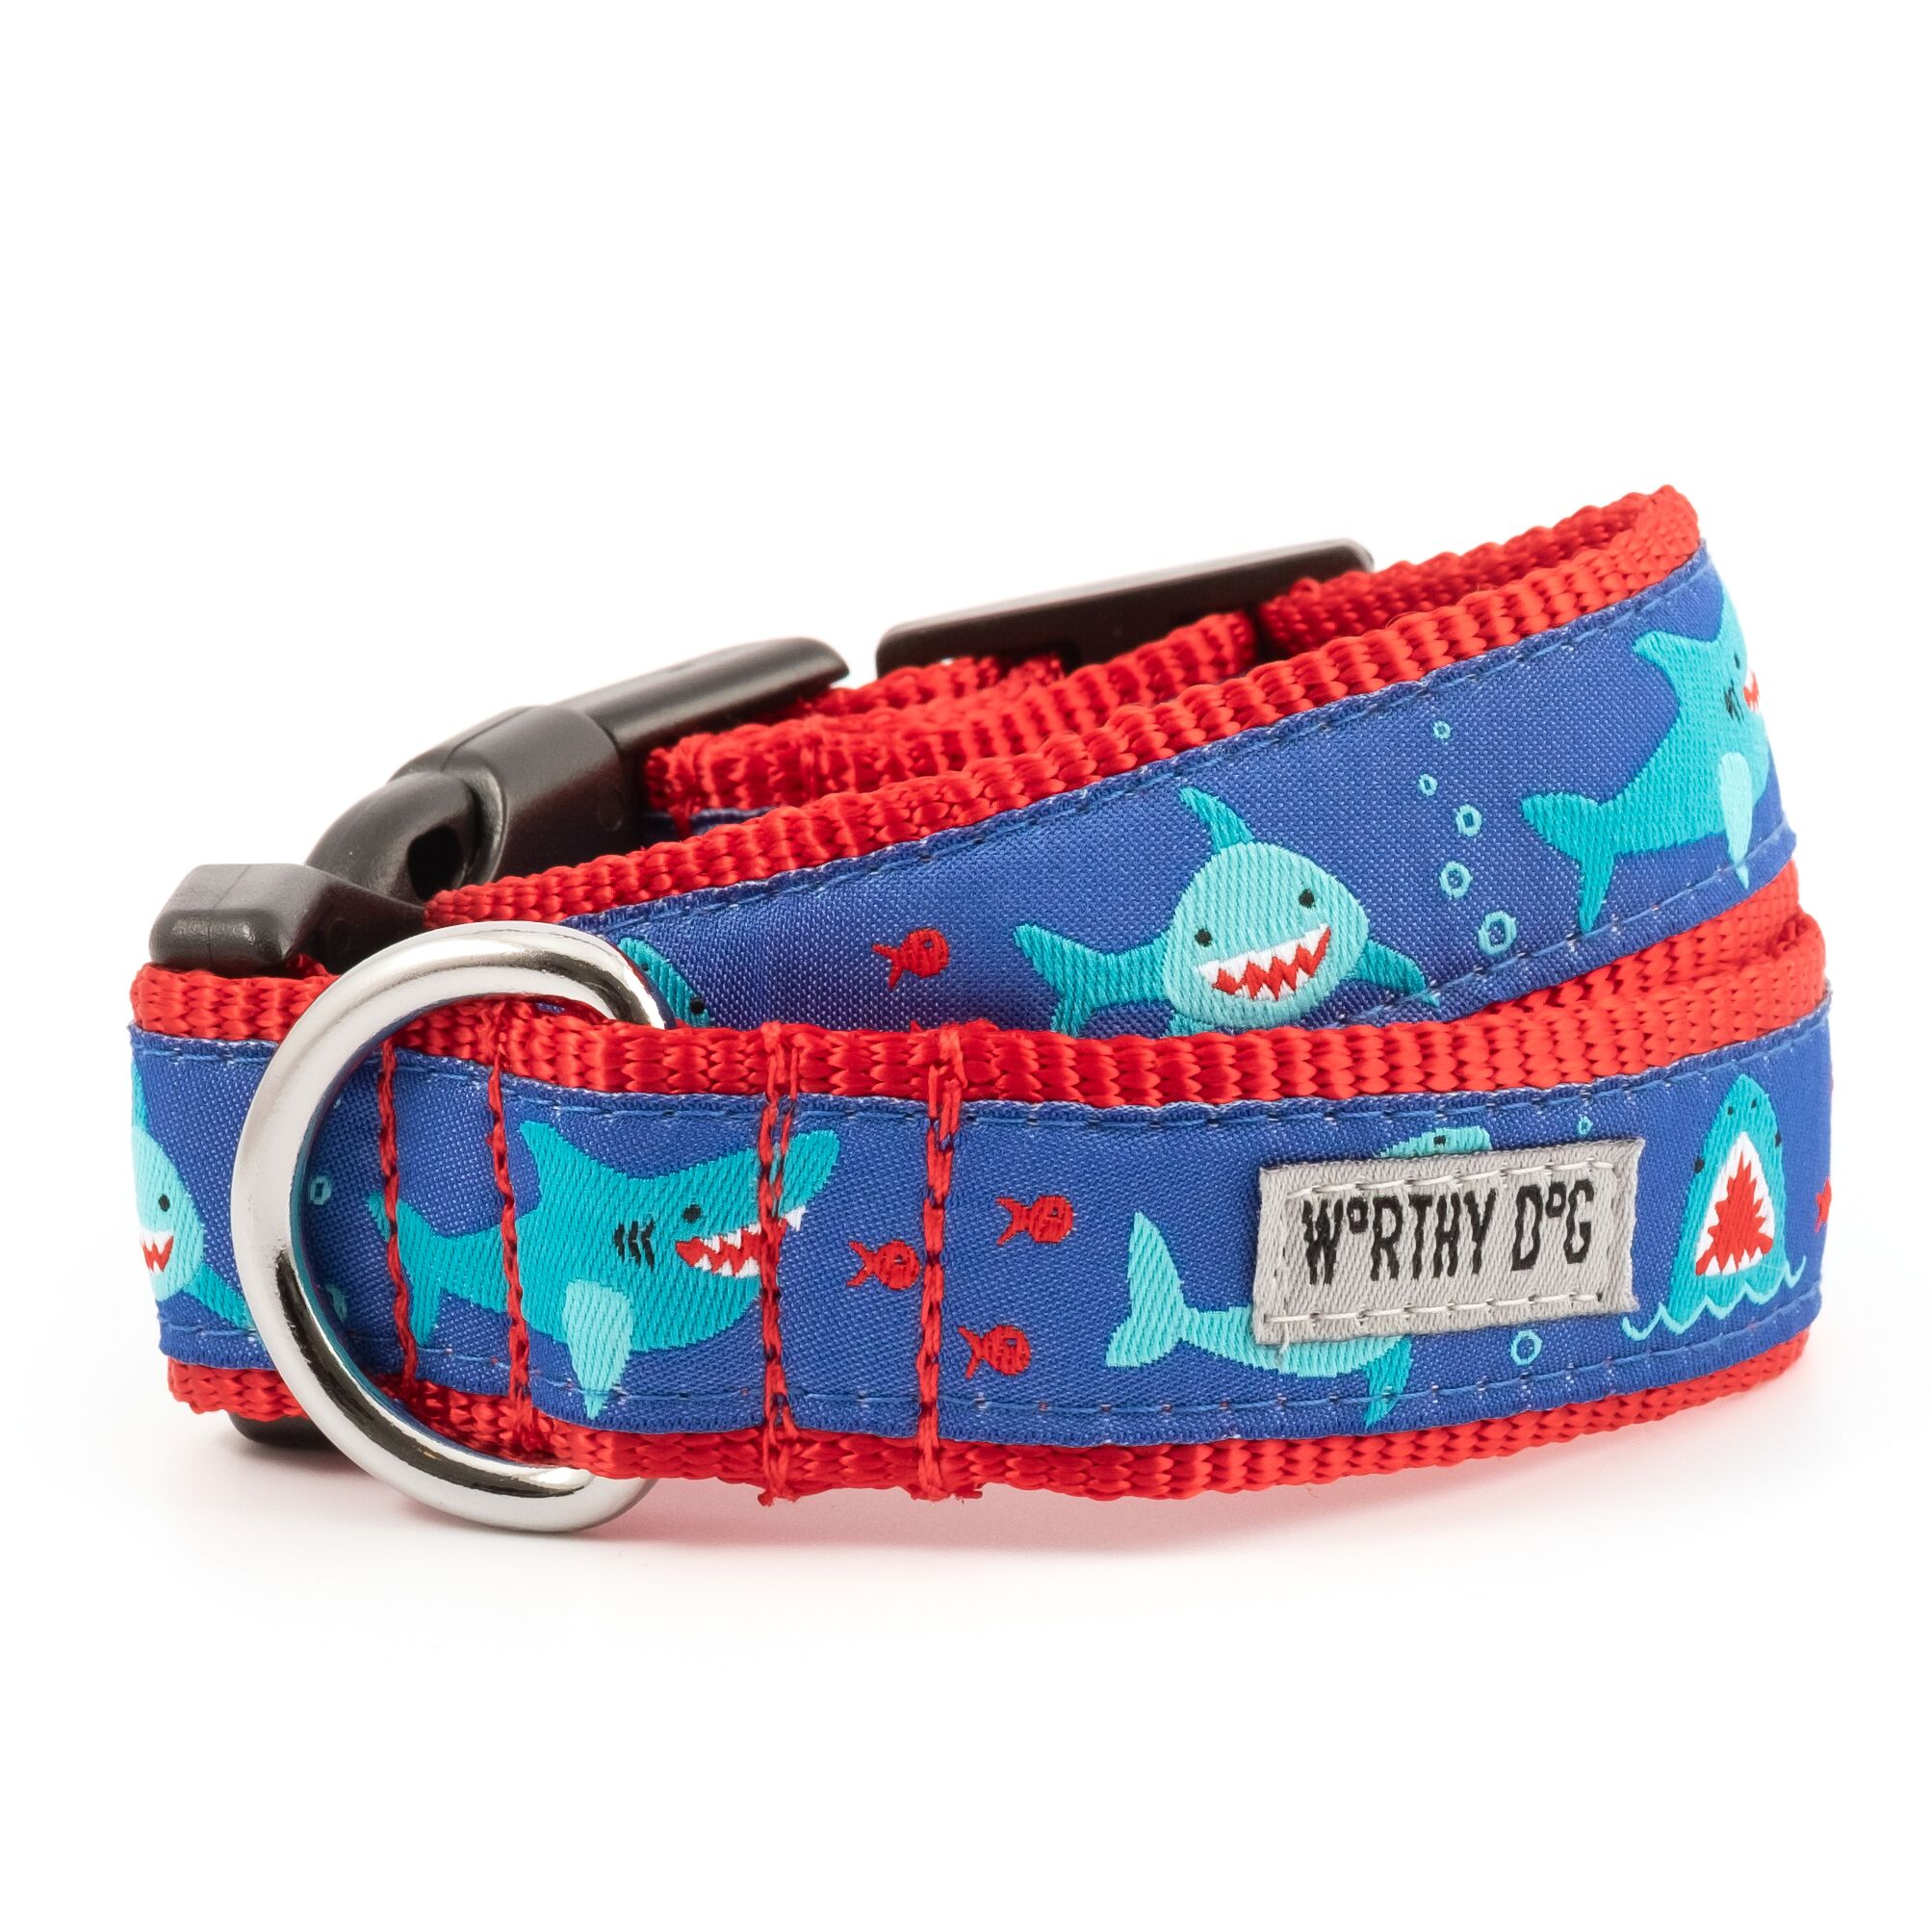 The Worthy Dog Collar, Chomp, X-Small